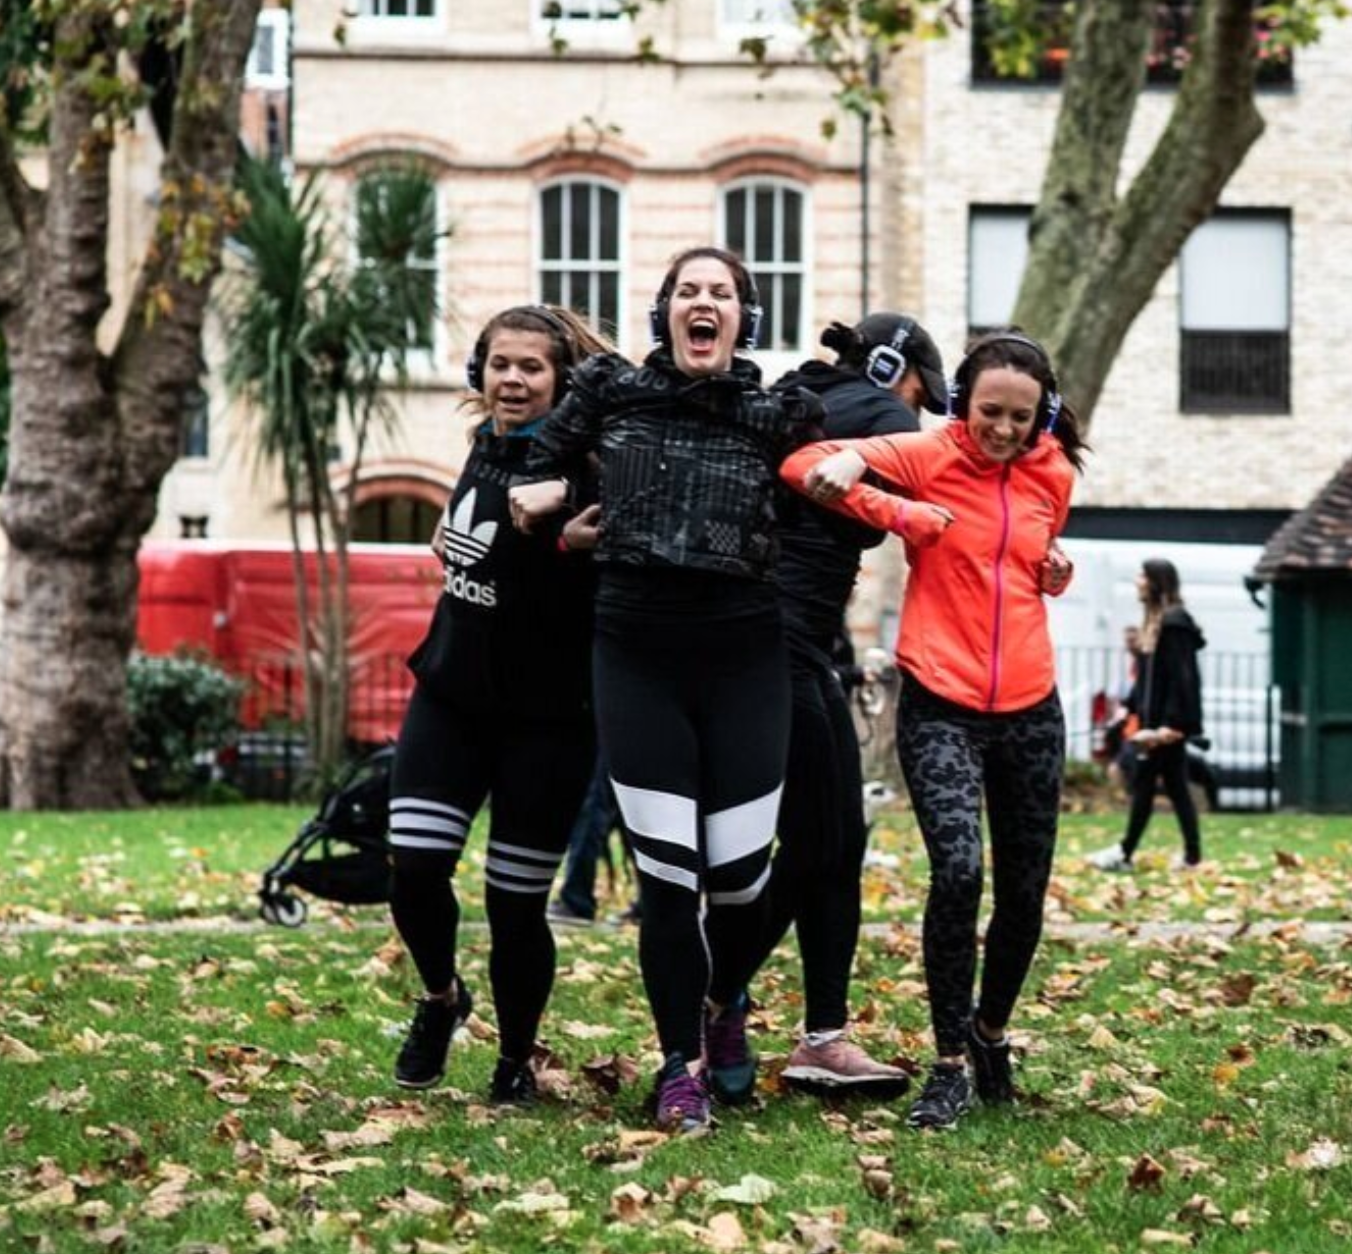 5 Outdoor classes to try in London (before we can go back to indoor classes)